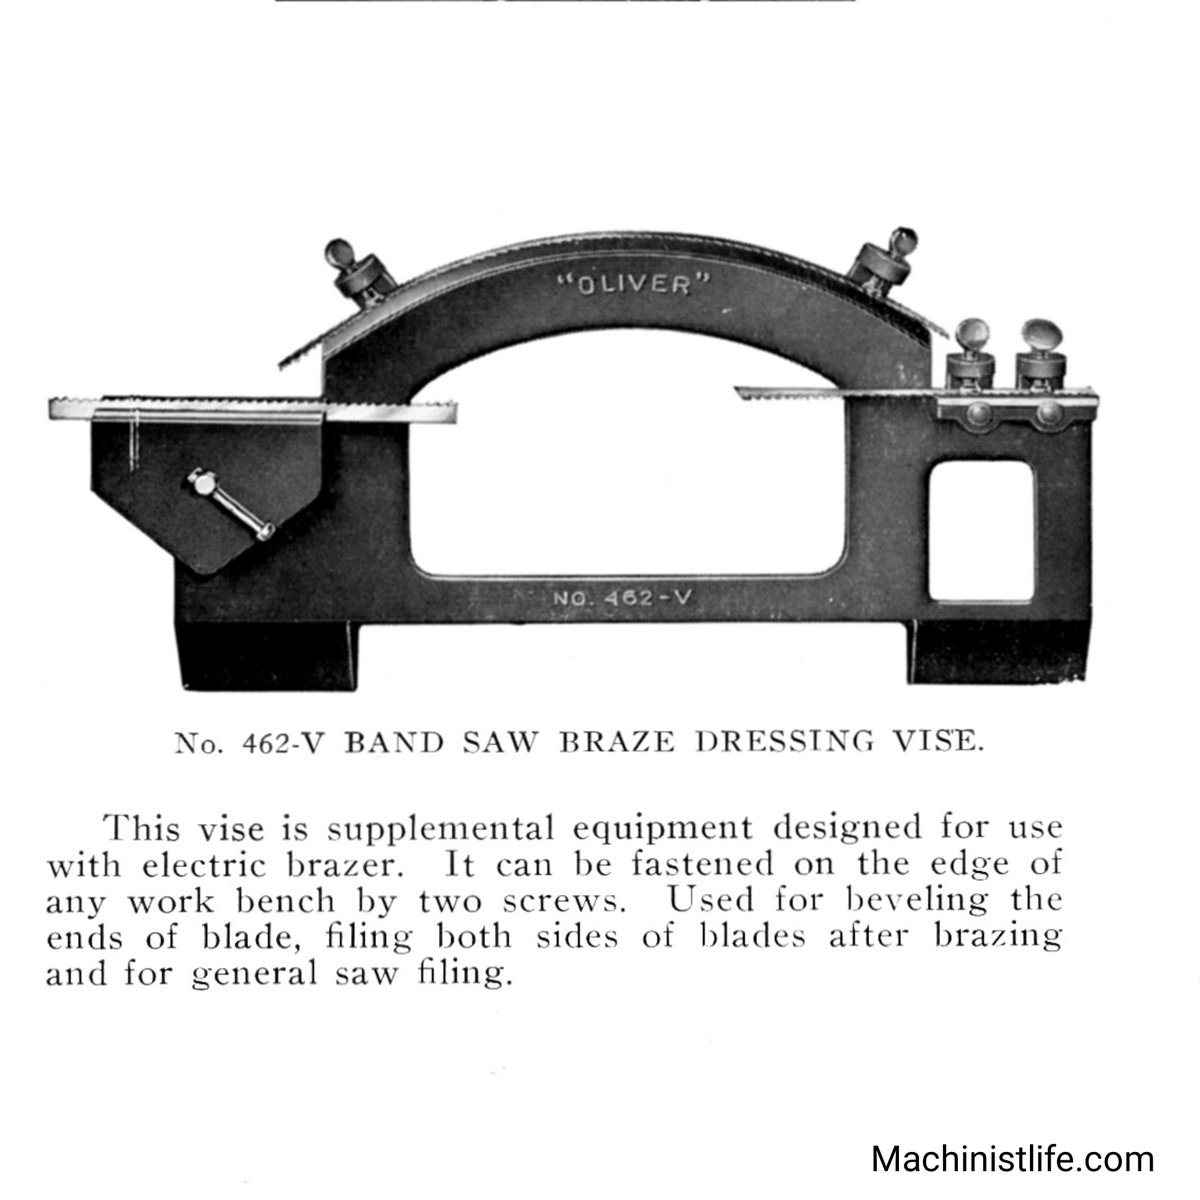 Old Oliver 462-V band saw blade brazing vise. Found this in a 1940s Oliver band saw manual. Oliver Machinery was started around 1903, and is well known for industrial woodworking equipment.  #olivermachinery #bandsaw #oldtools #machinists #vintagemachinery #machinistlifepic.twitter.com/6einsryNRM